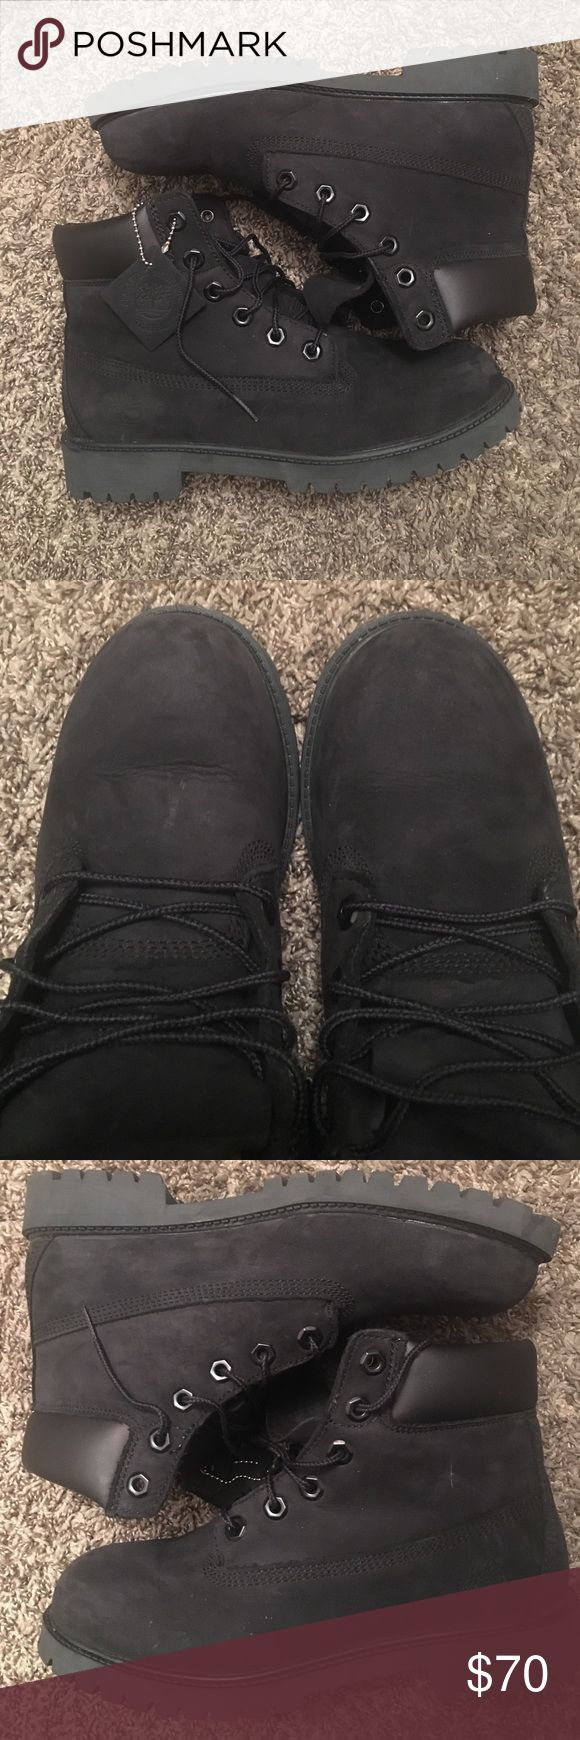 All Black Timberlands All black Timbs. Worn once. Size 6.5 in boys, so 8.5/9 in women's. Timberland Shoes